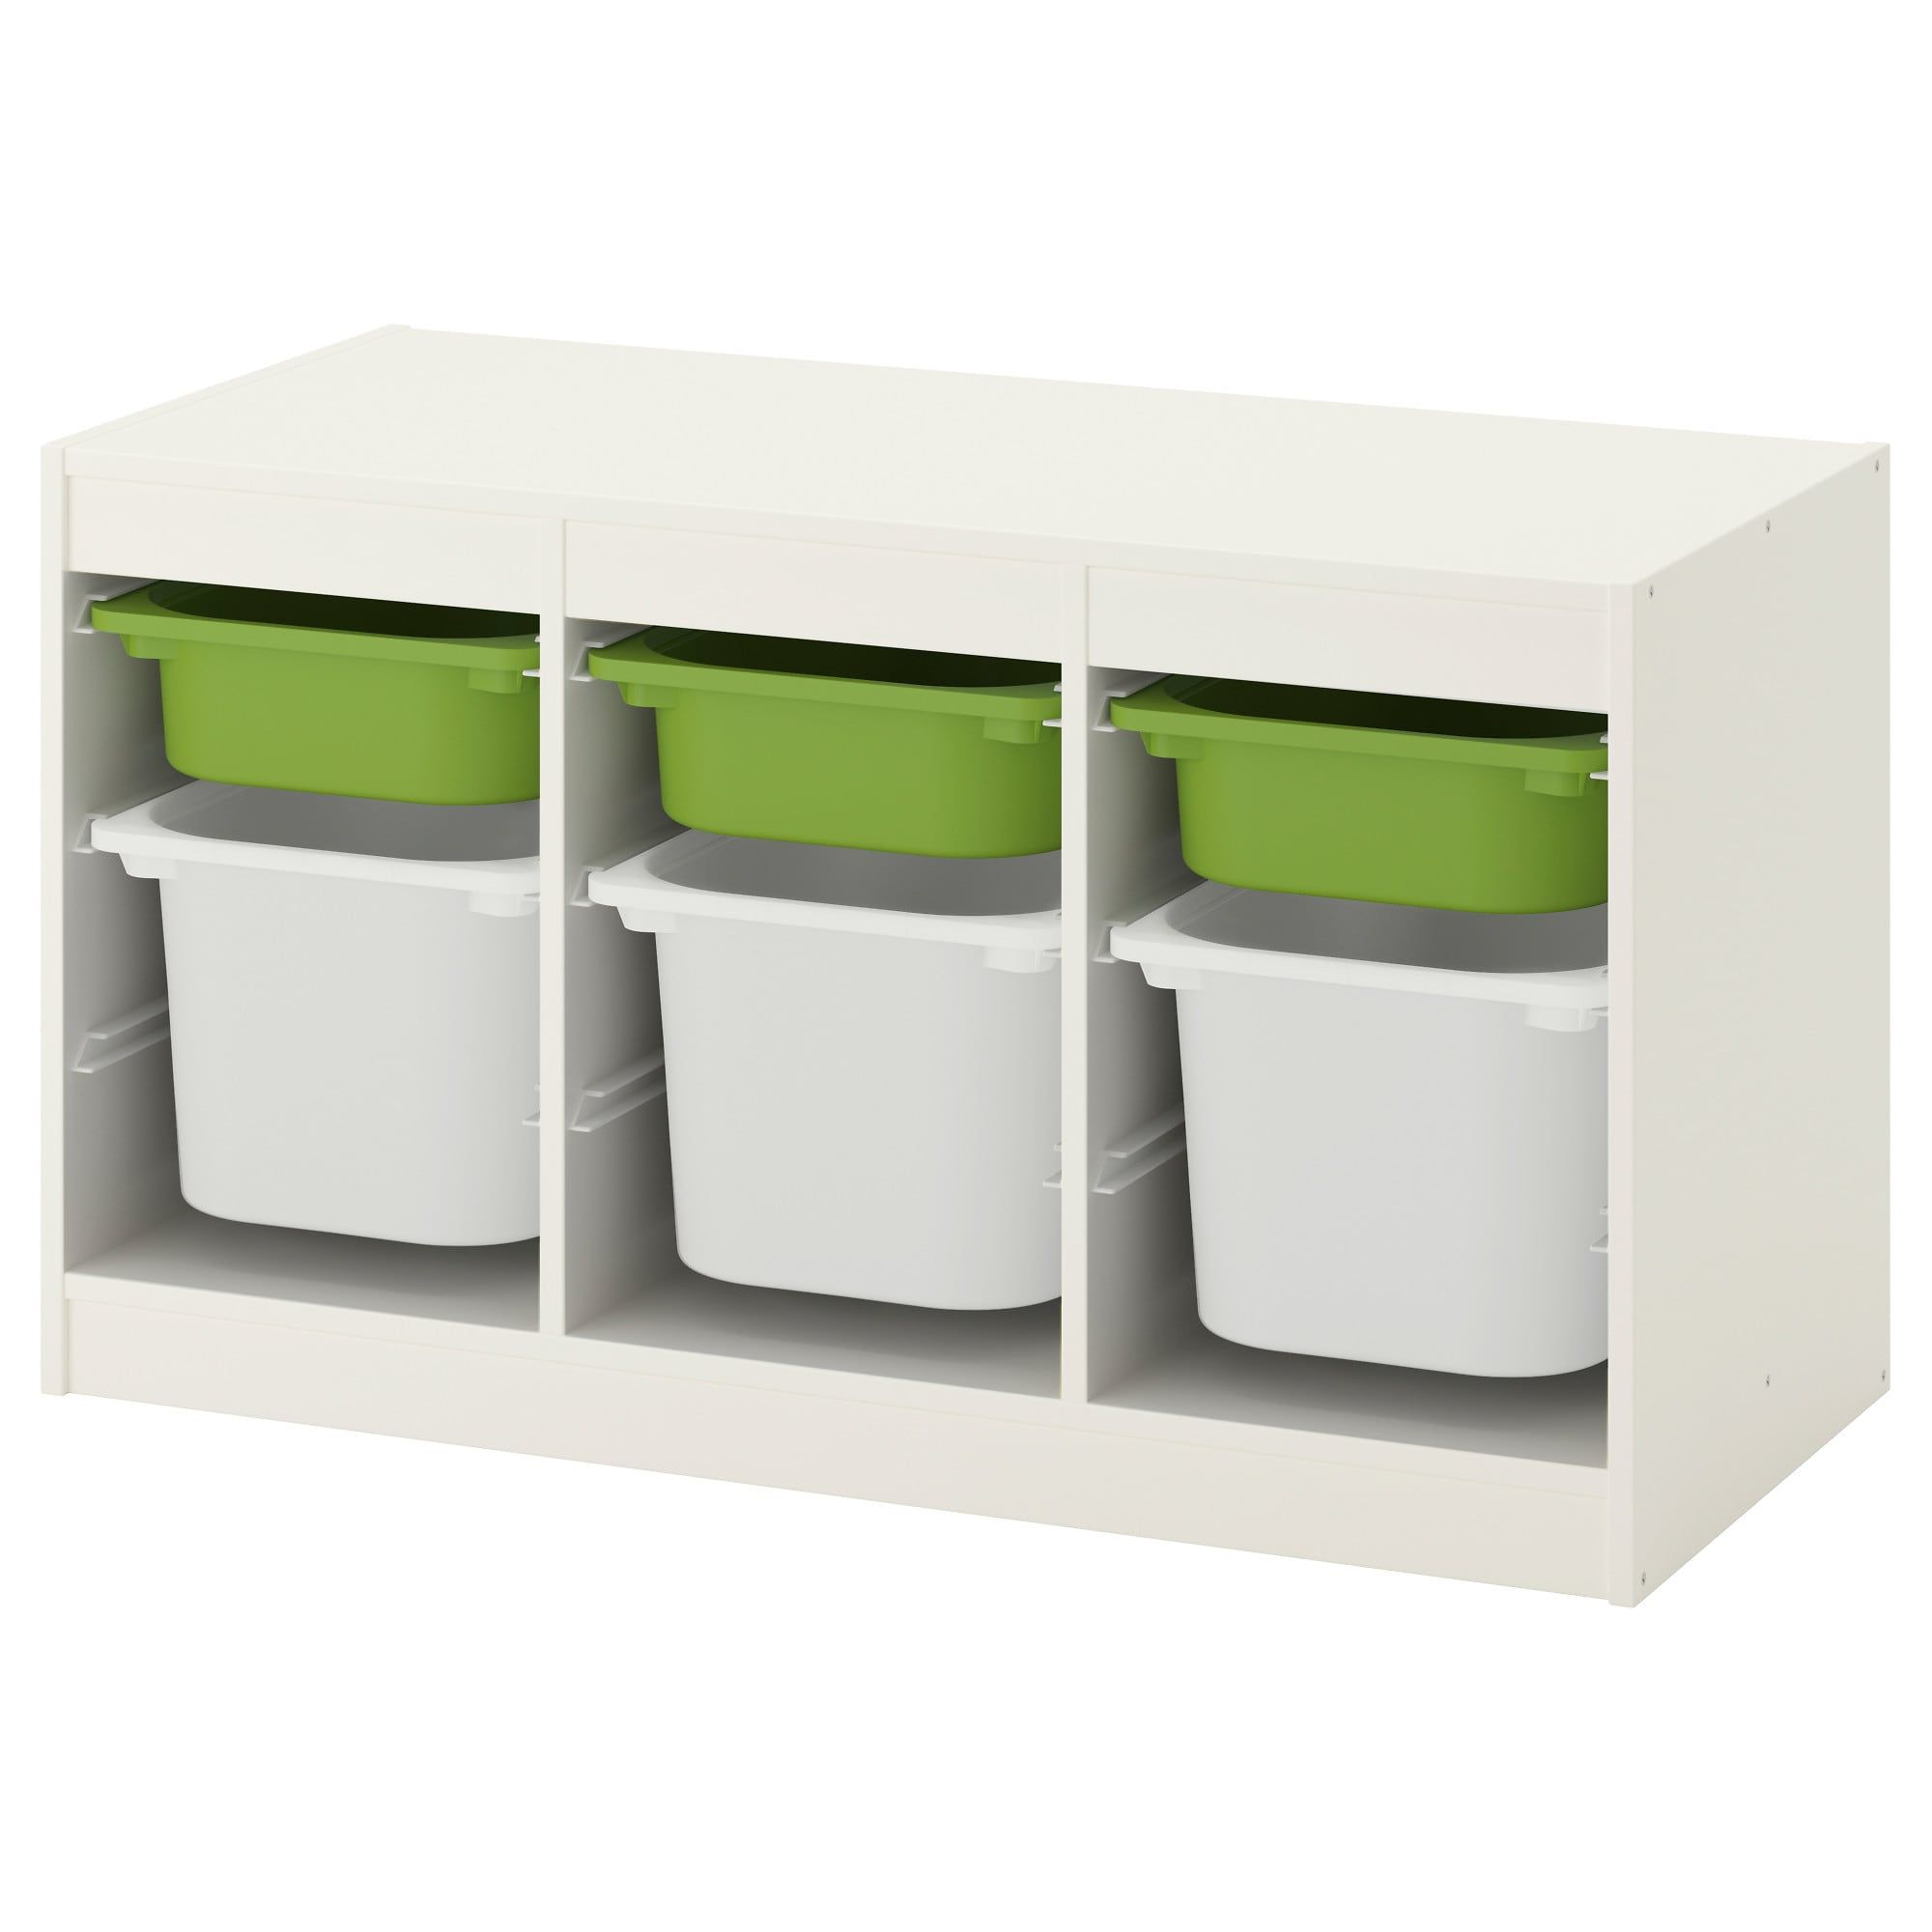 Trofast Storage Combination With Boxes White Green